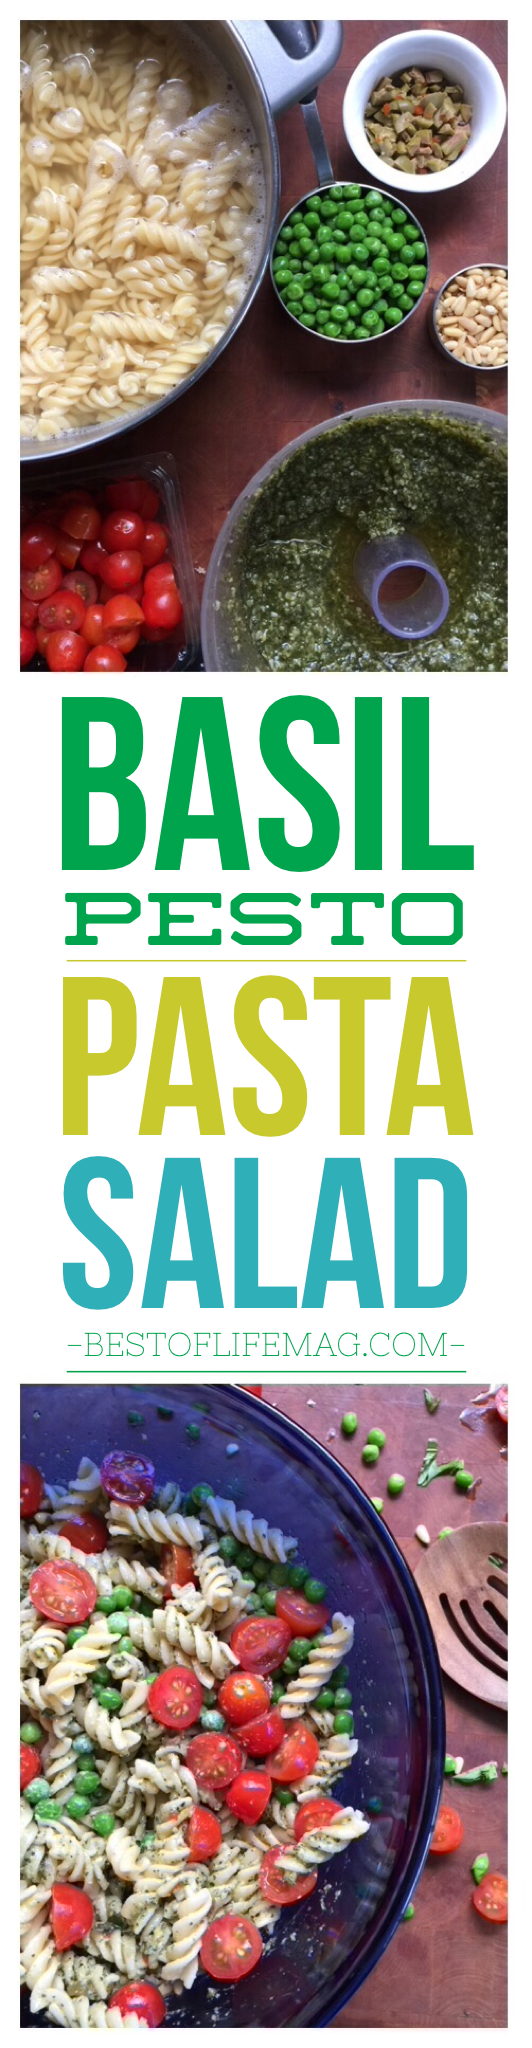 Yes, this really is the PERFECT pesto pasta salad to make anytime of the year. The colors are beautiful and the flavors please the palate. via @amybarseghian